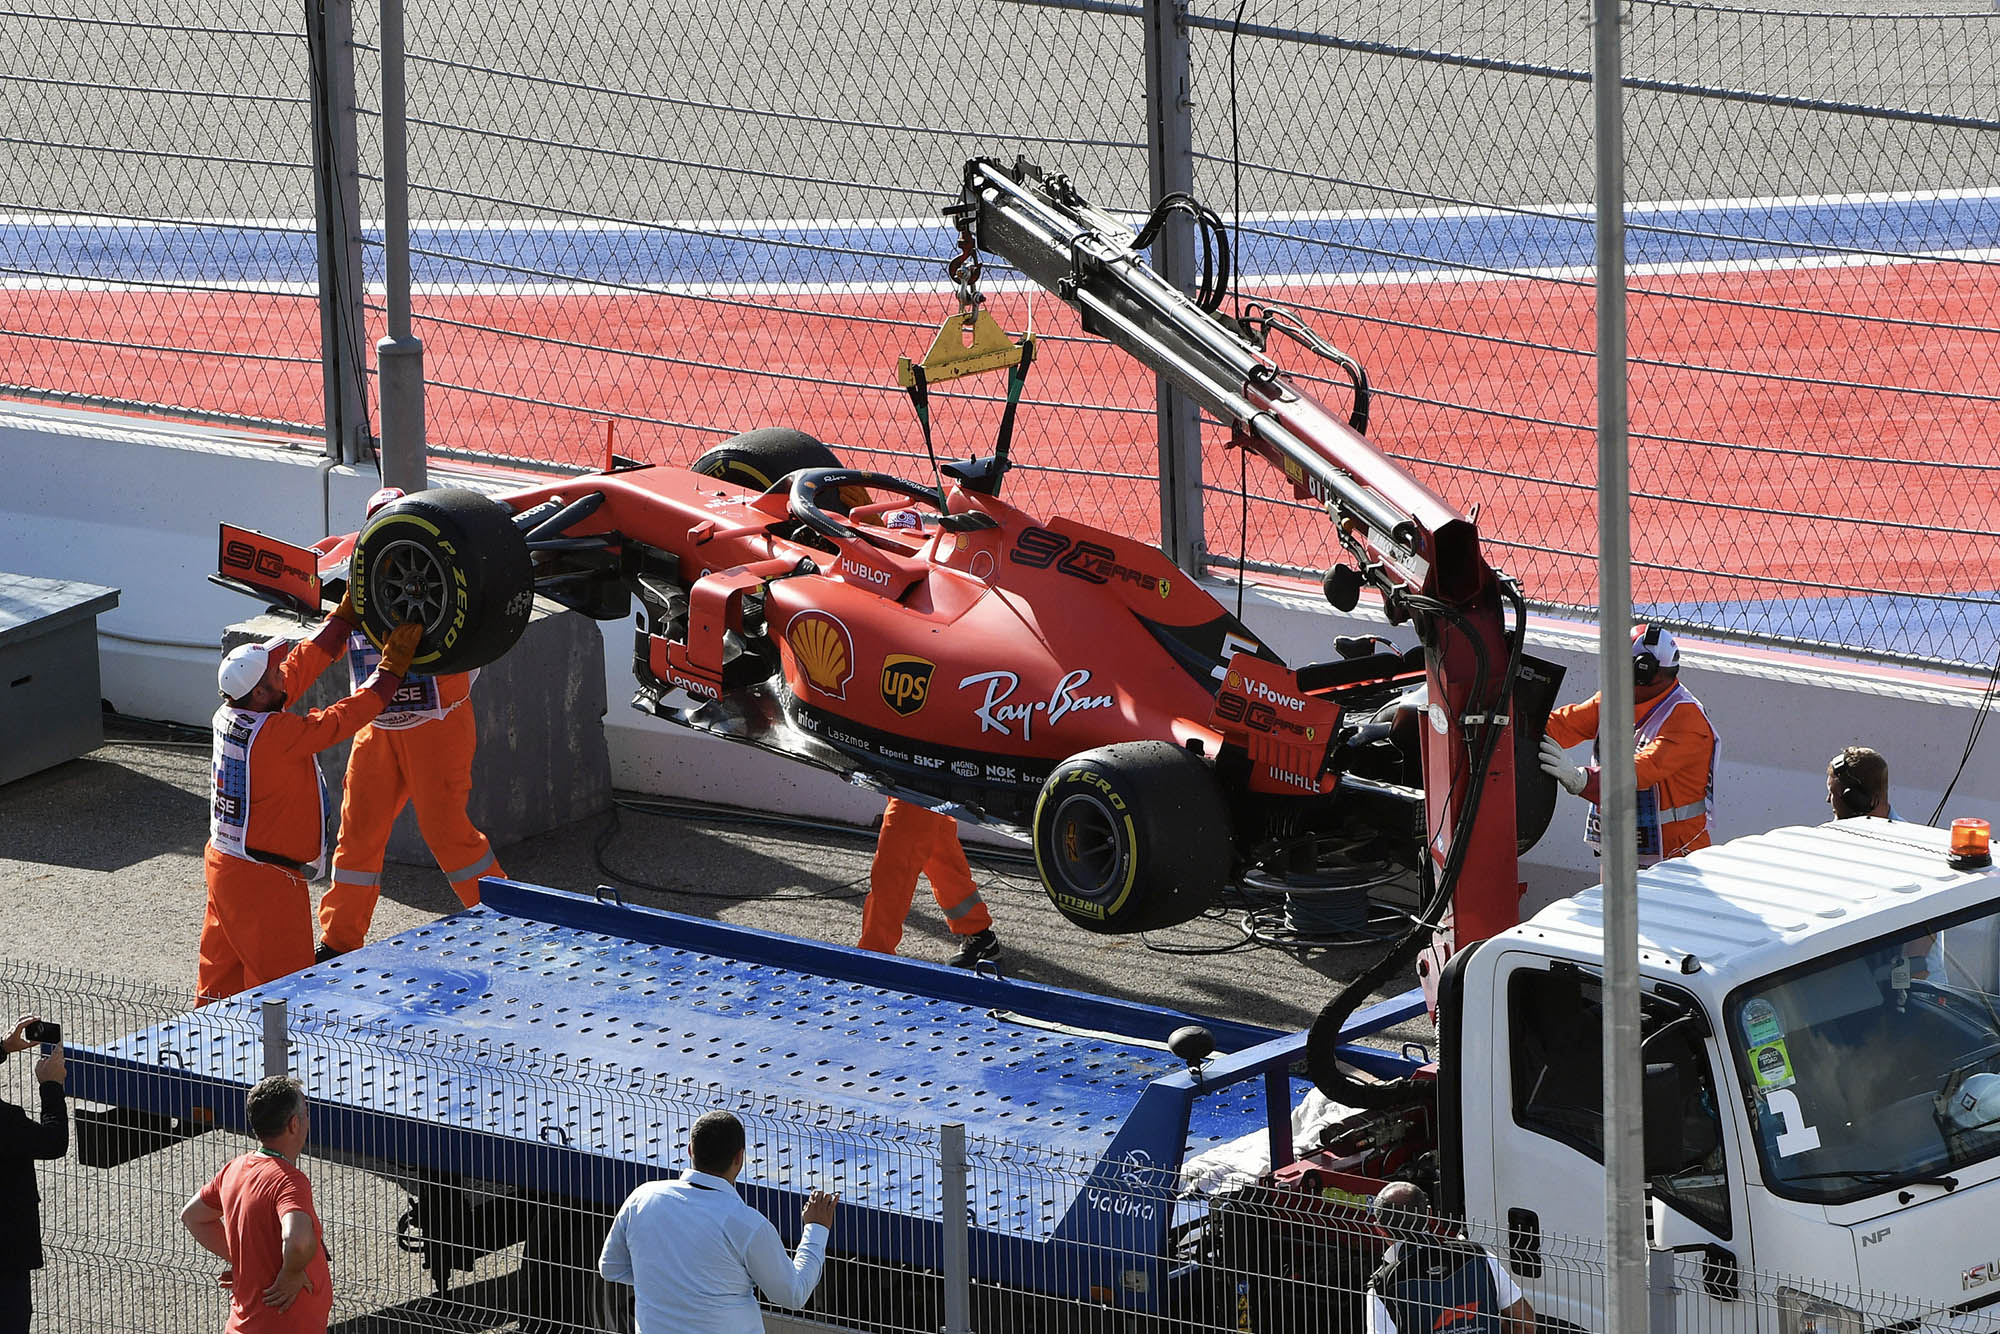 Sebastian Vettel's car is loaded onto a truck after an electrical problem forced him out of the 2019 Russian Grand Prix